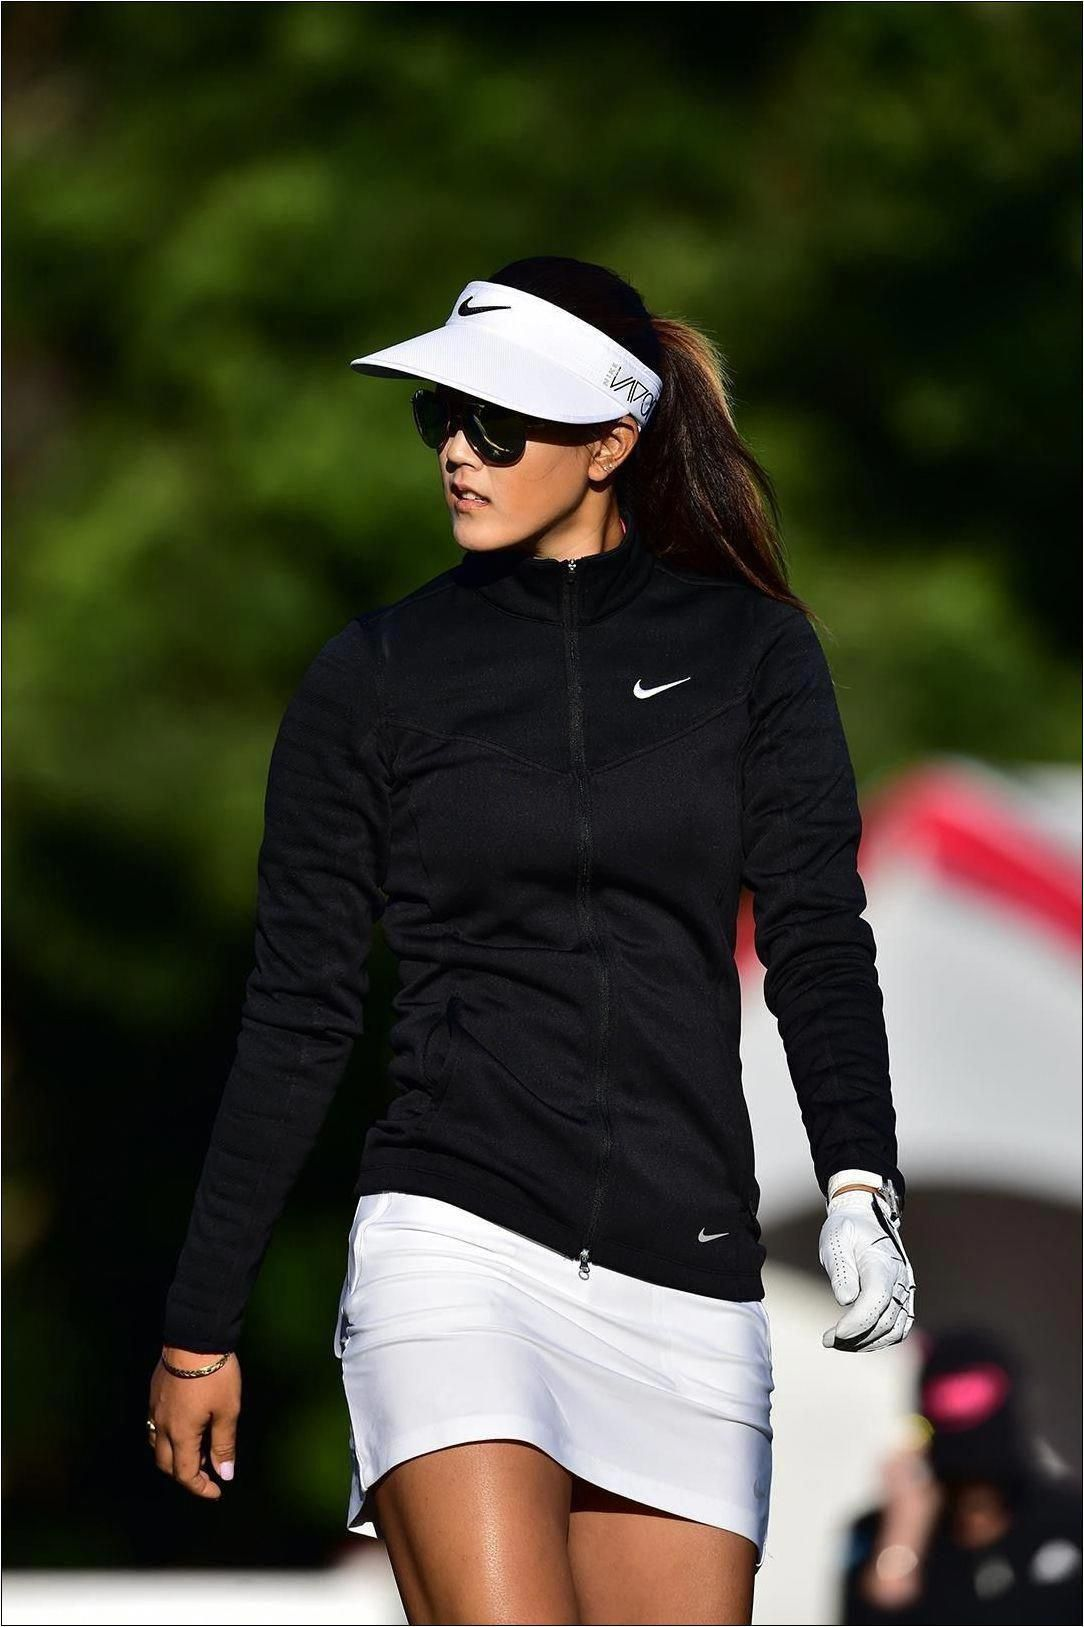 Women's Golf Clothes and Women's Golf Outfits – What You Need to Know